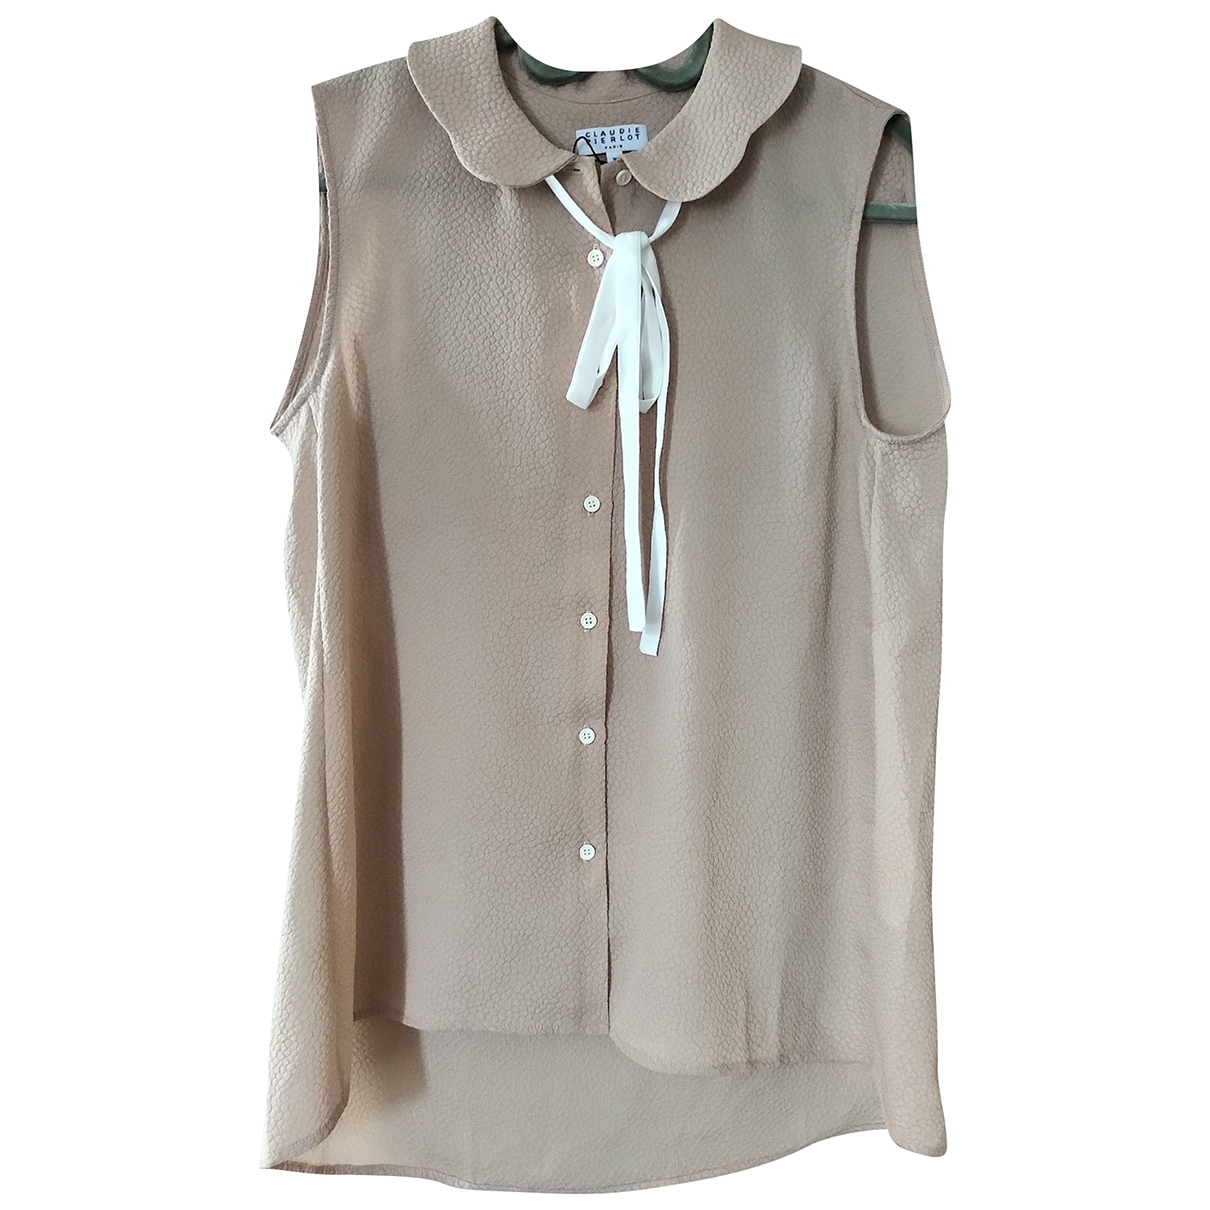 Claudie Pierlot \N Beige  top for Women 36 FR